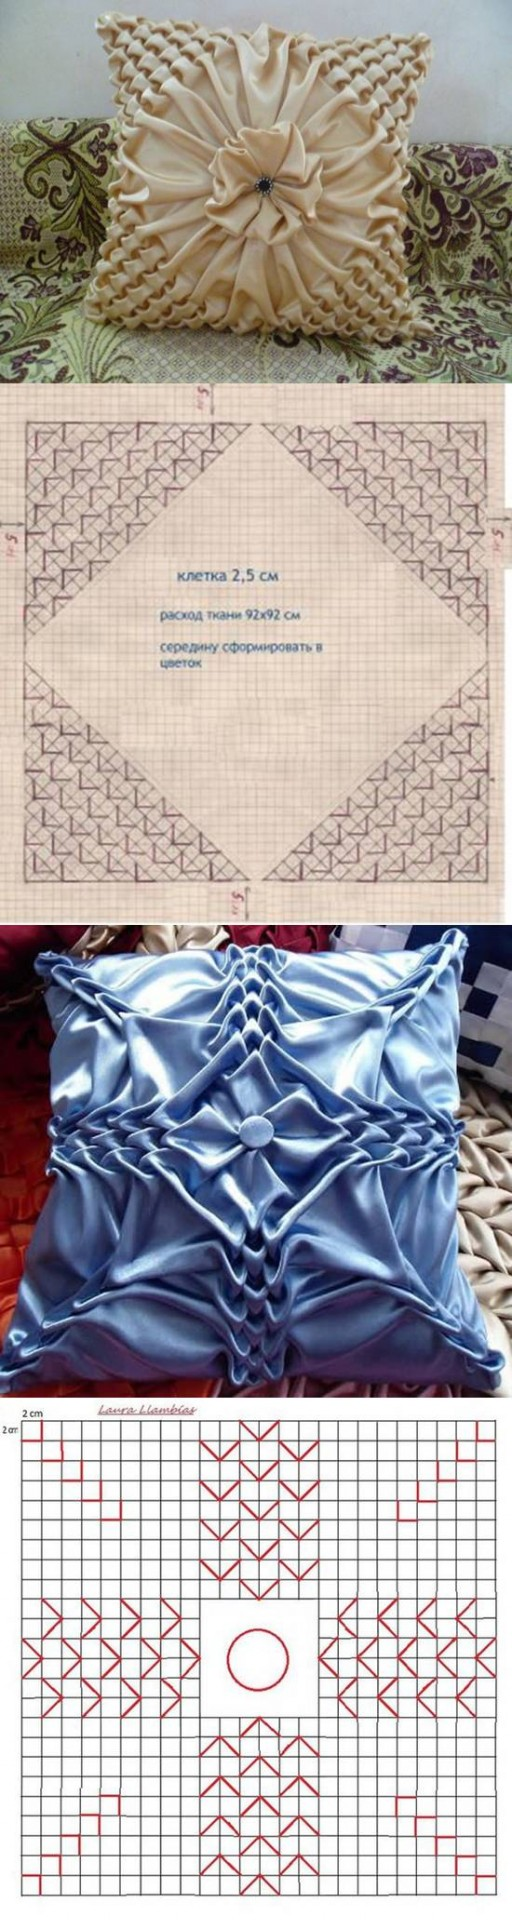 How to make Pillow Patterns Puffed Sleeves DIY tutorial instructions